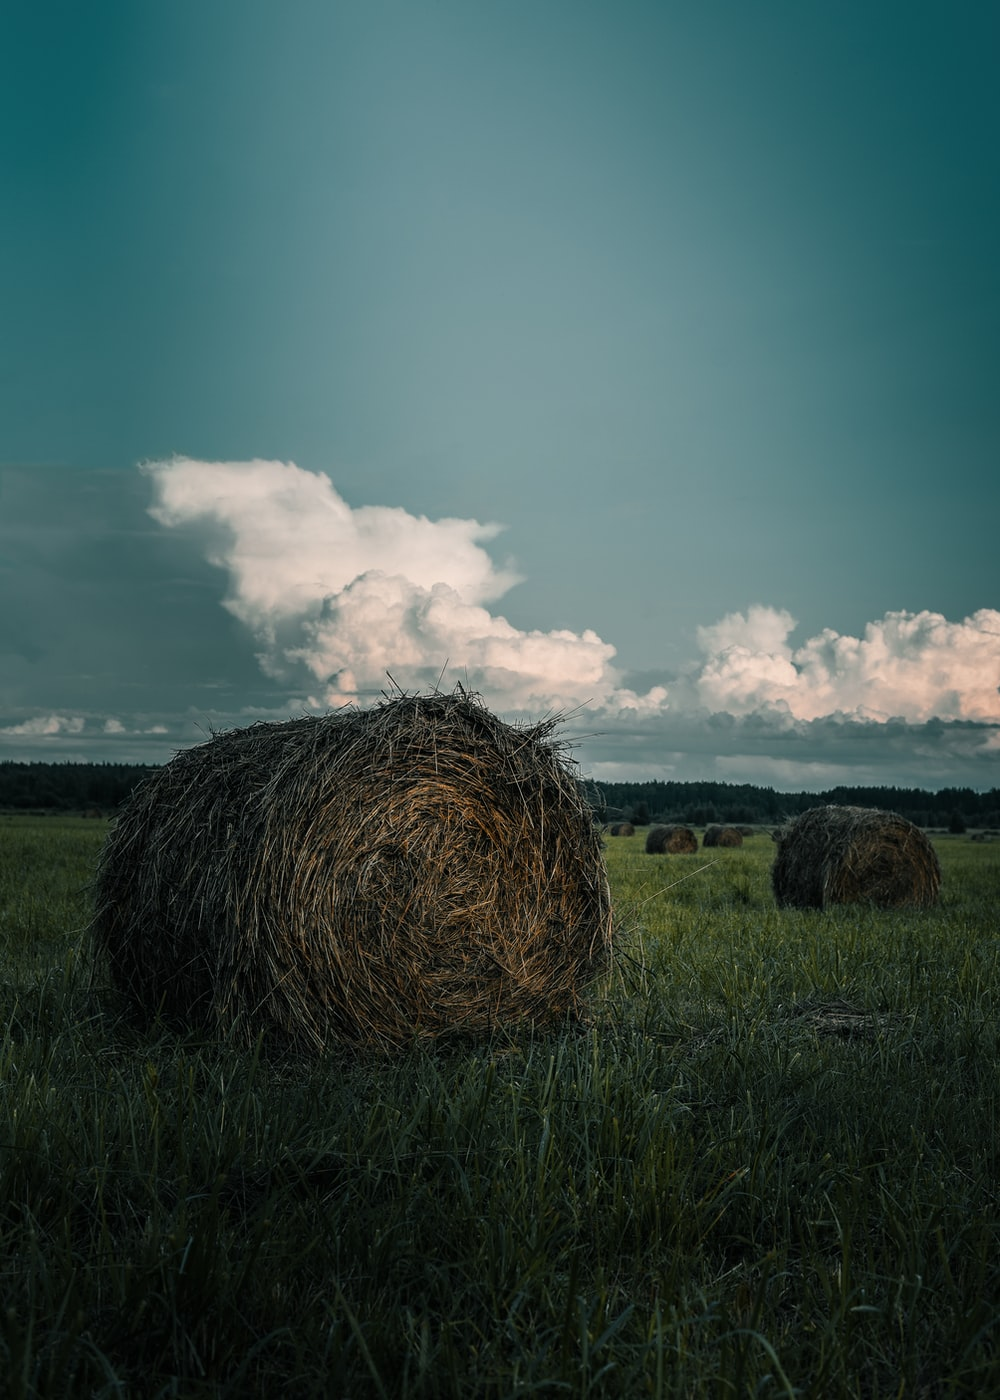 hay stack on grass field during daytime